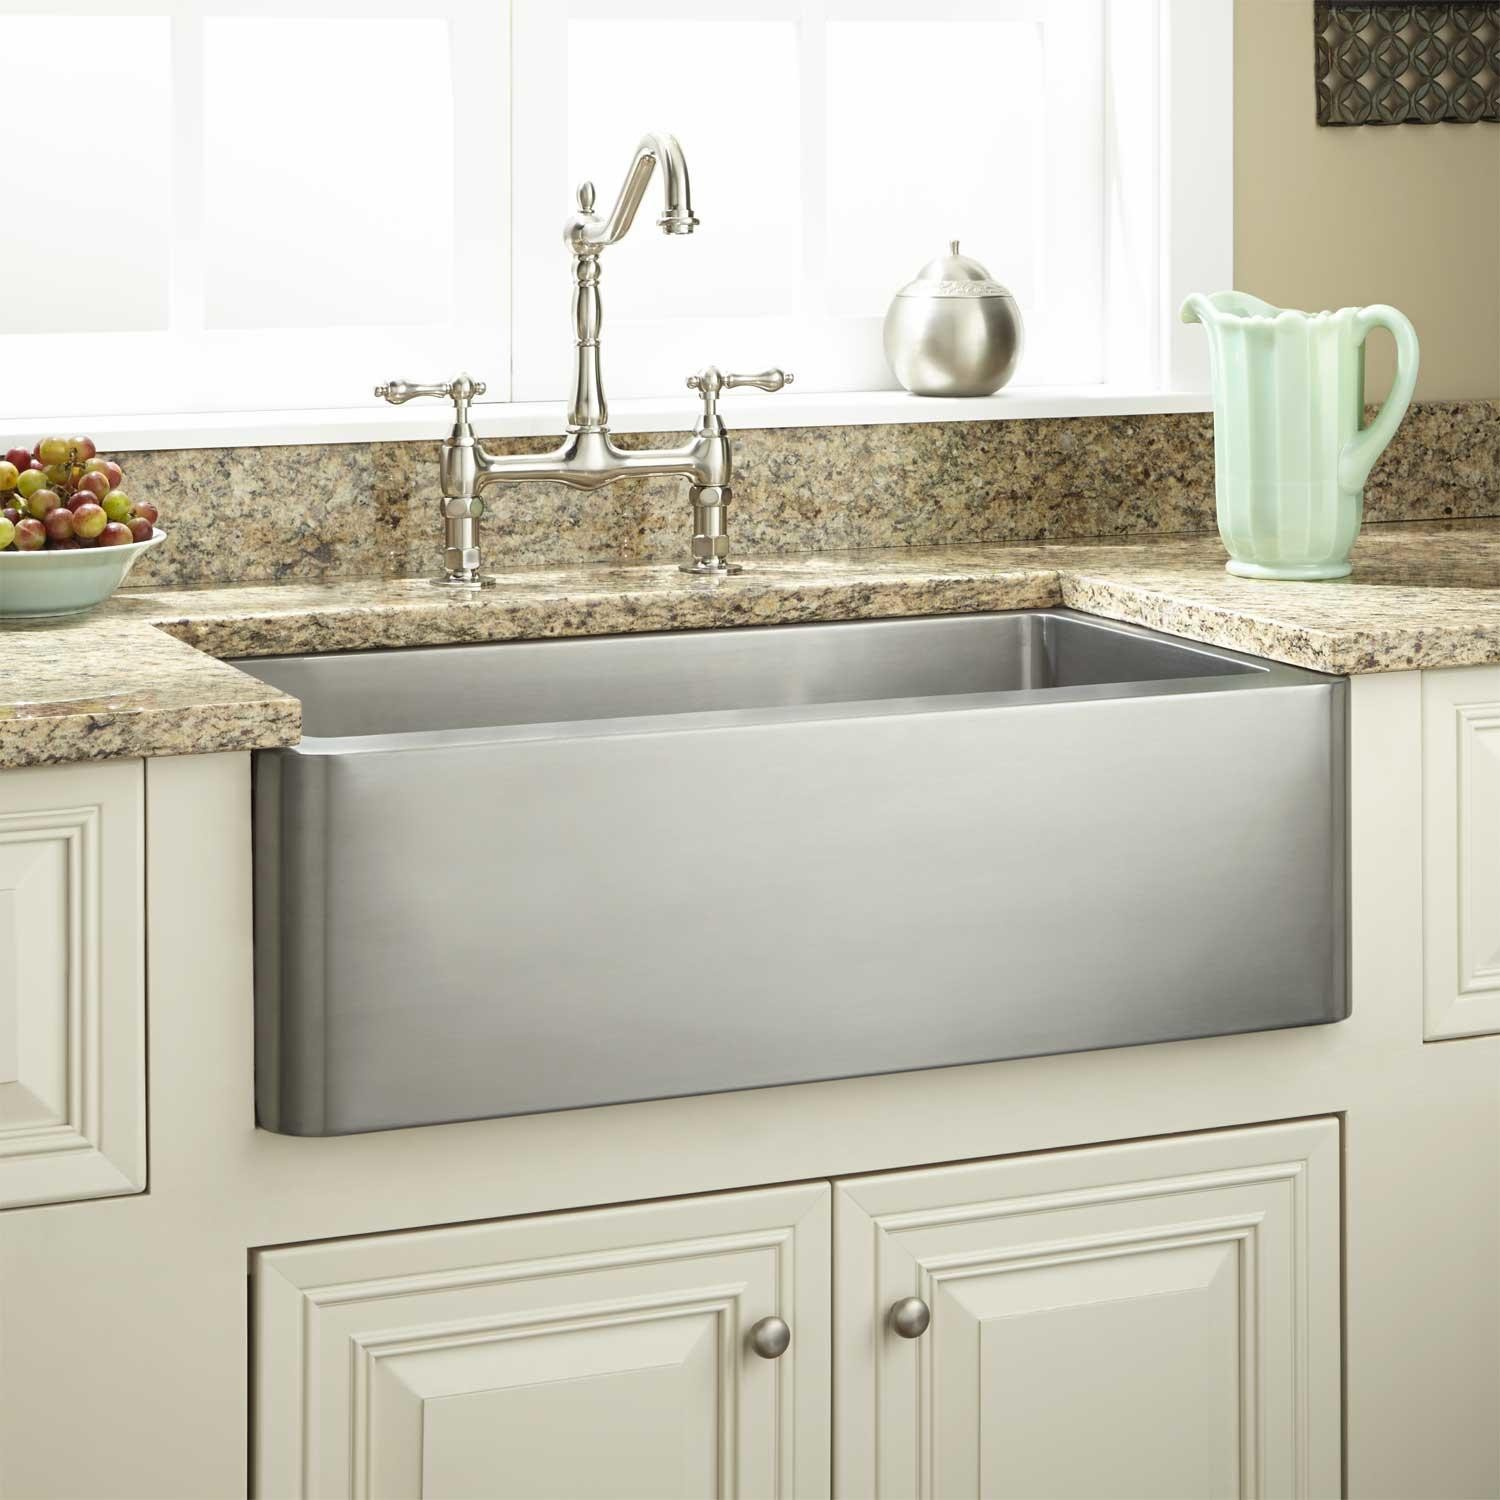 Beautiful Drop Gorgeous Farmhouse Style Sink Faucet Utility Sinks For Apron with Farmhouse Sink In Bathroom